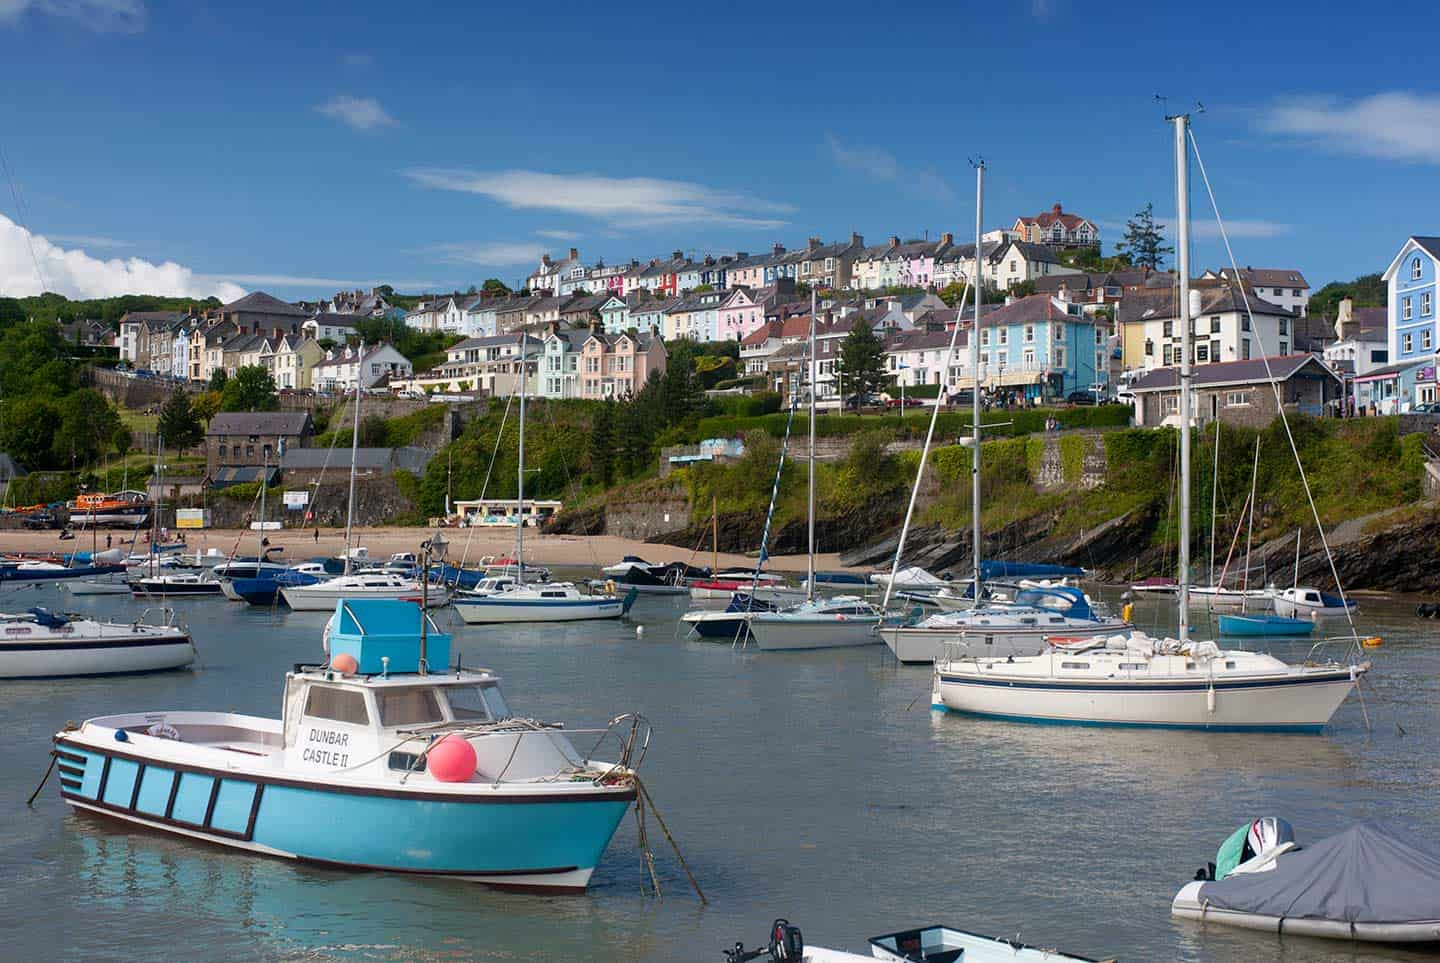 Image of New Quay harbour on the Mid Wales coast